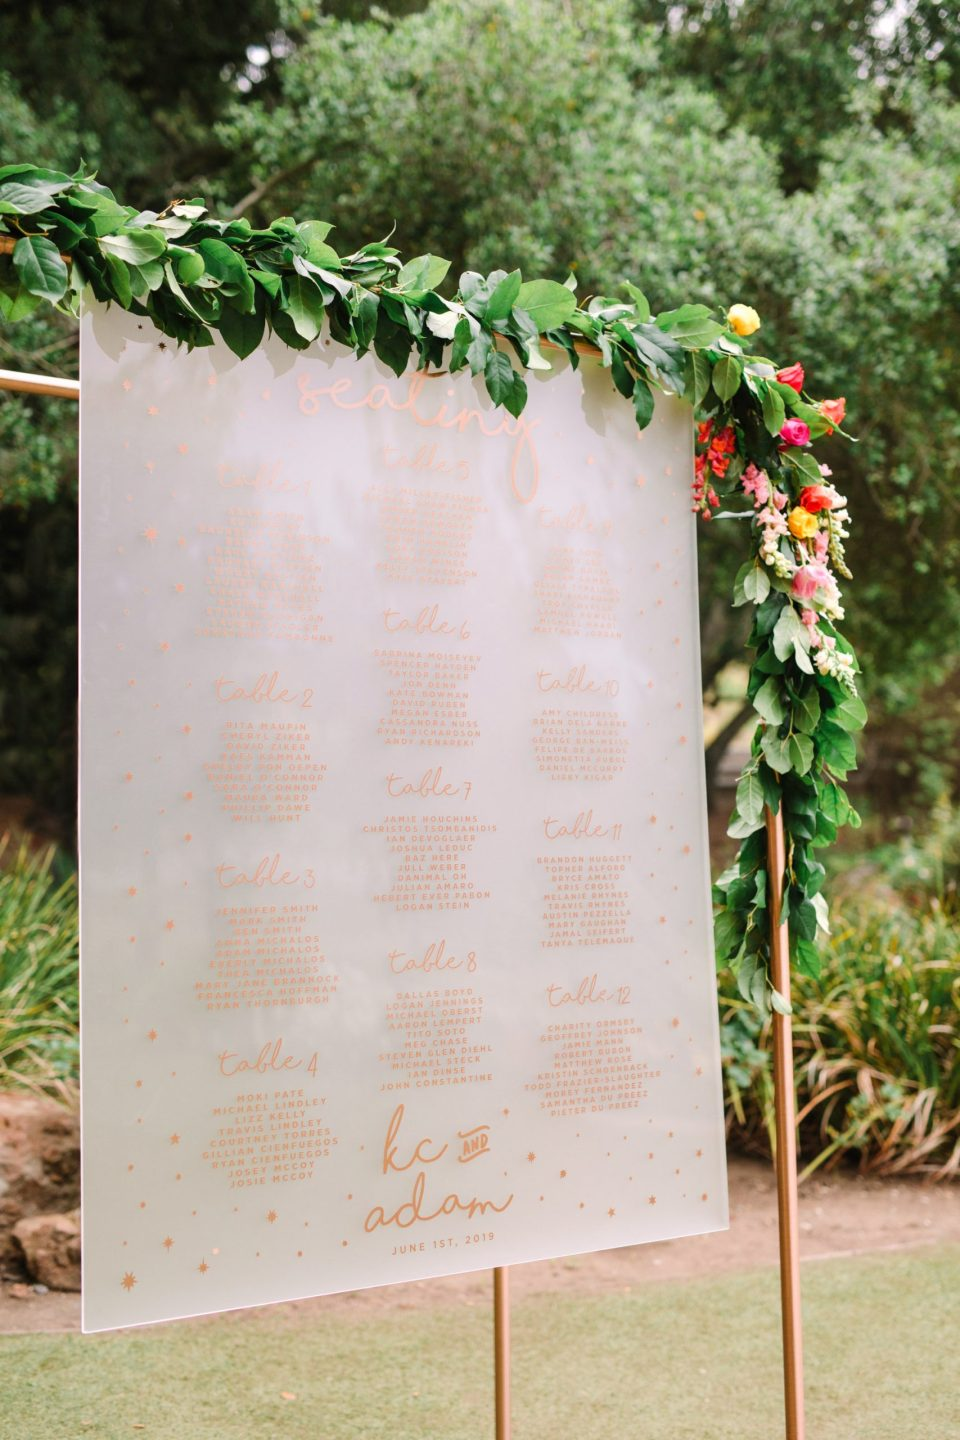 Seating chart created by Tropic of Flowers, photo by Mary Costa Photography